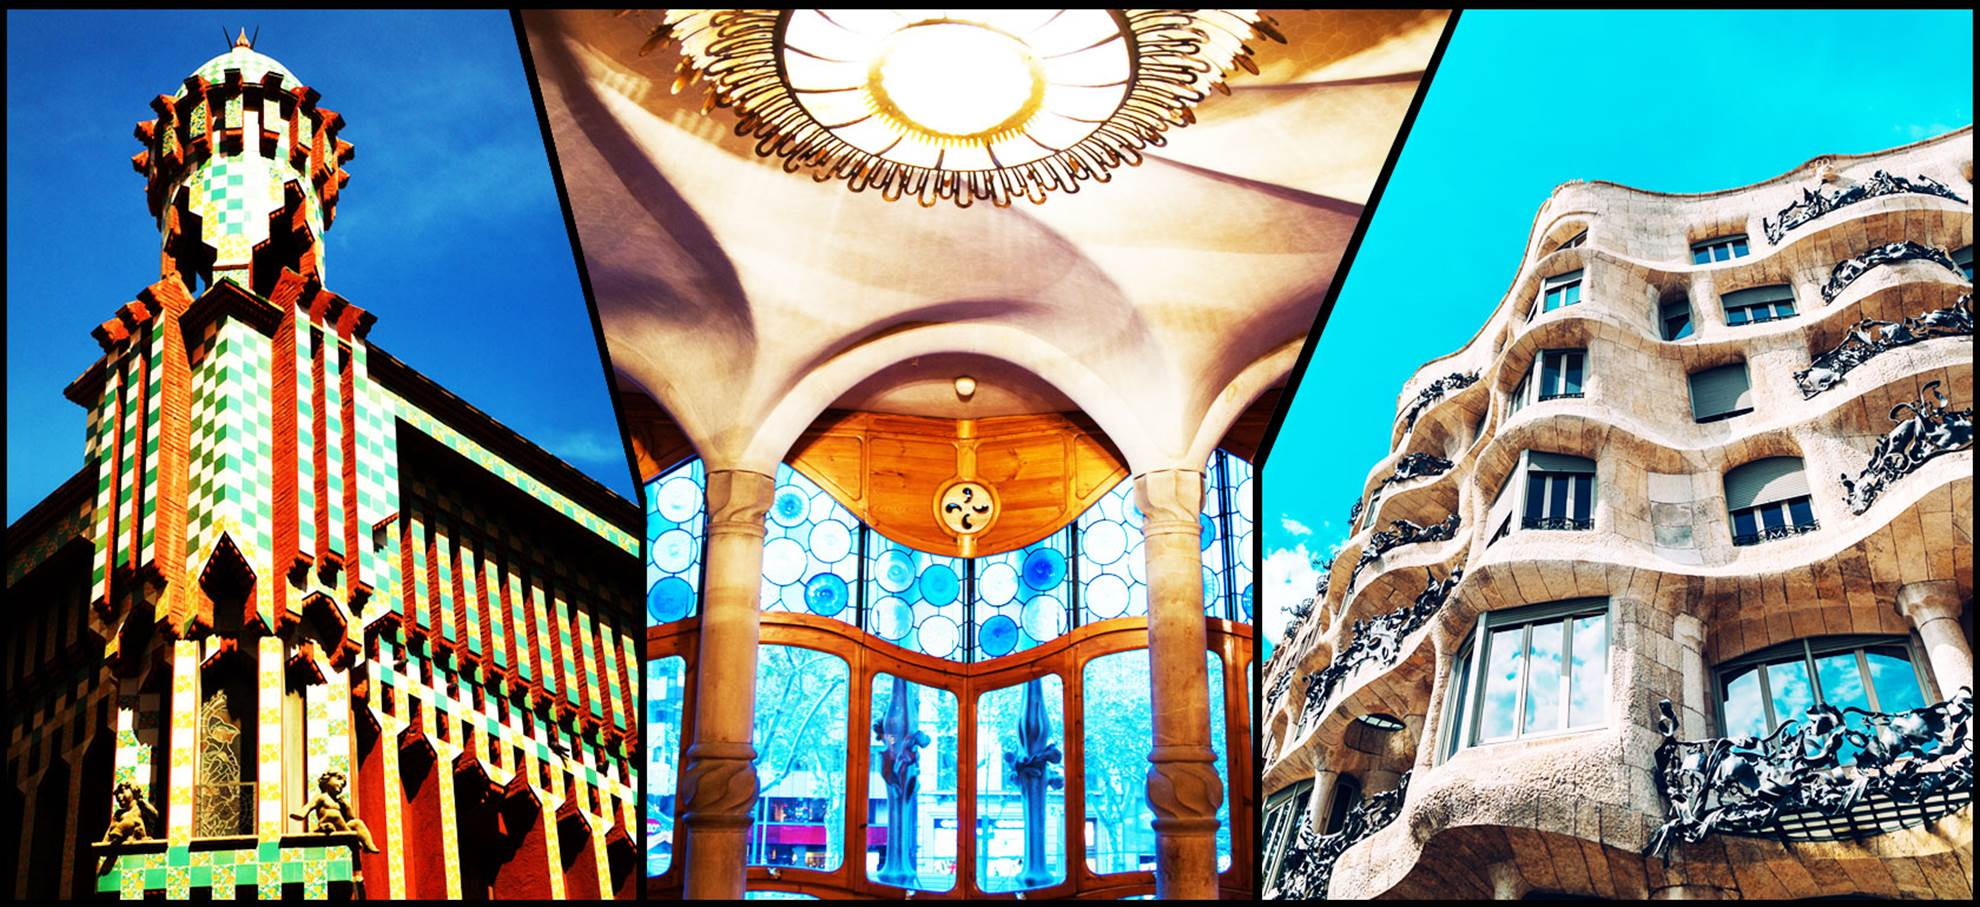 The 3 houses of Gaudi: Direct entrance to Casa Batllo, Mila and Vicens!